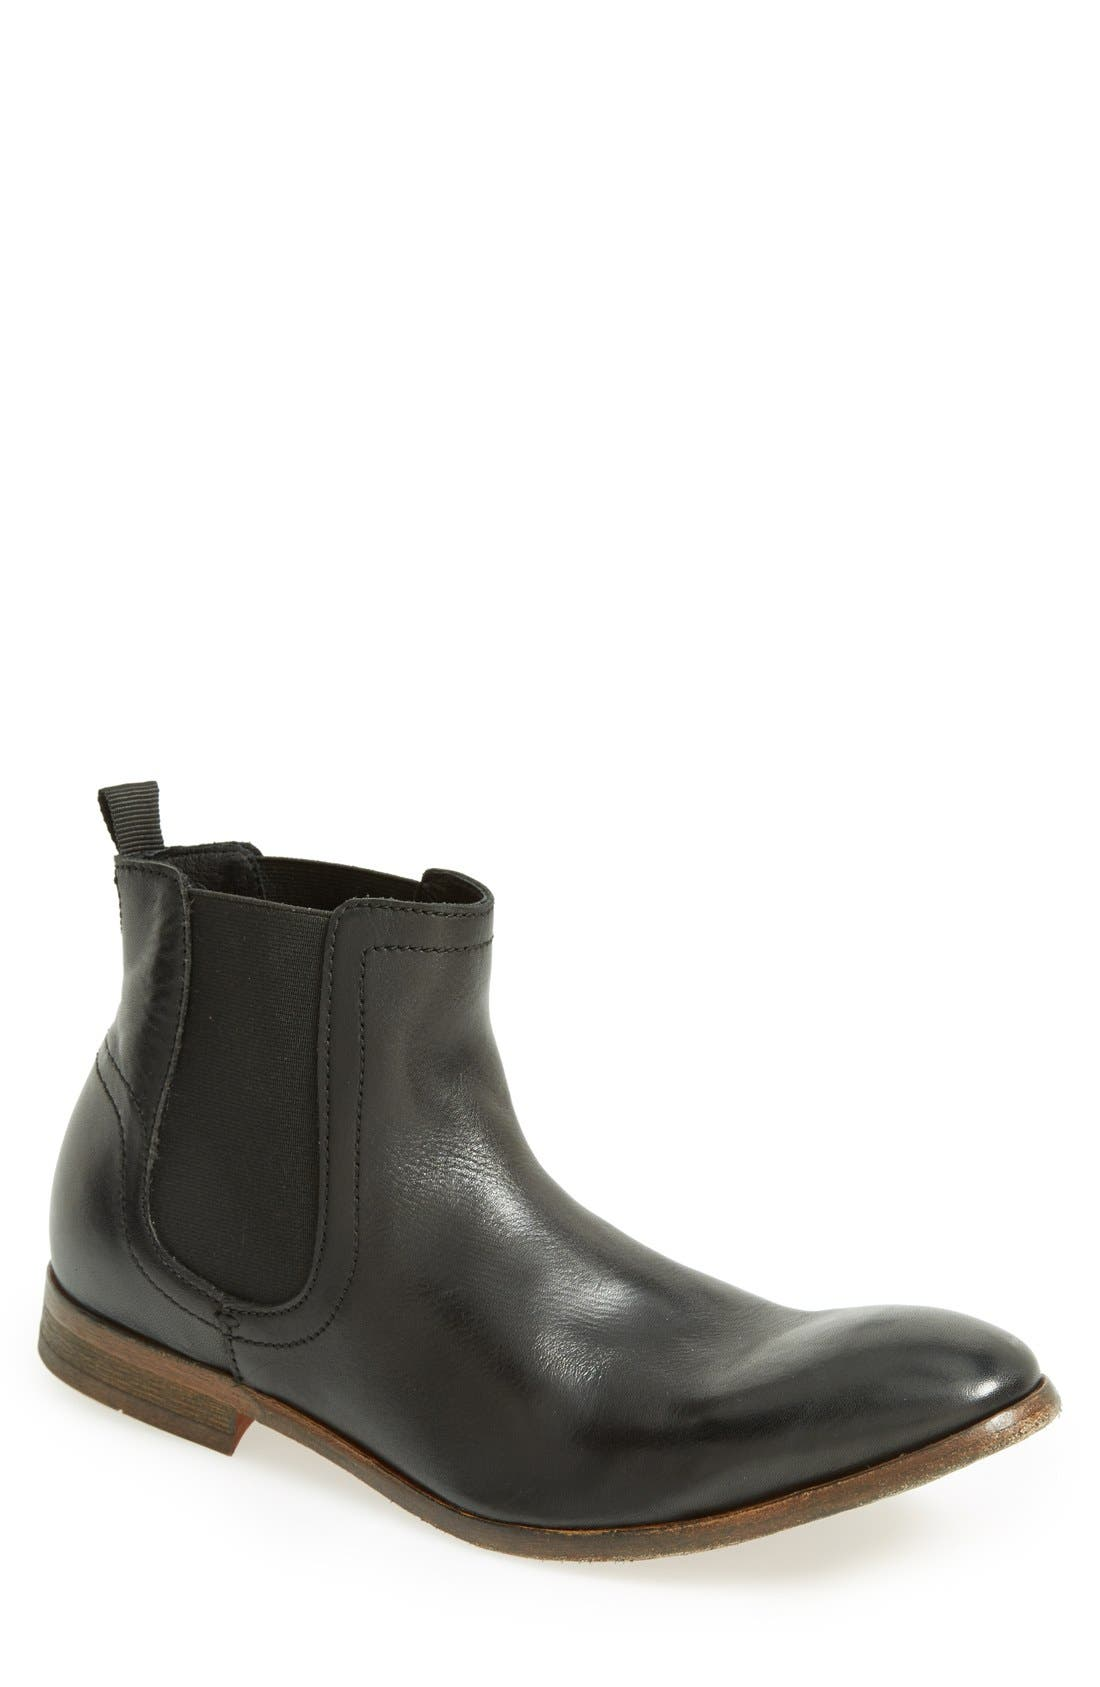 H BY HUDSON 'Patterson' Chelsea Boot, Main, color, 001